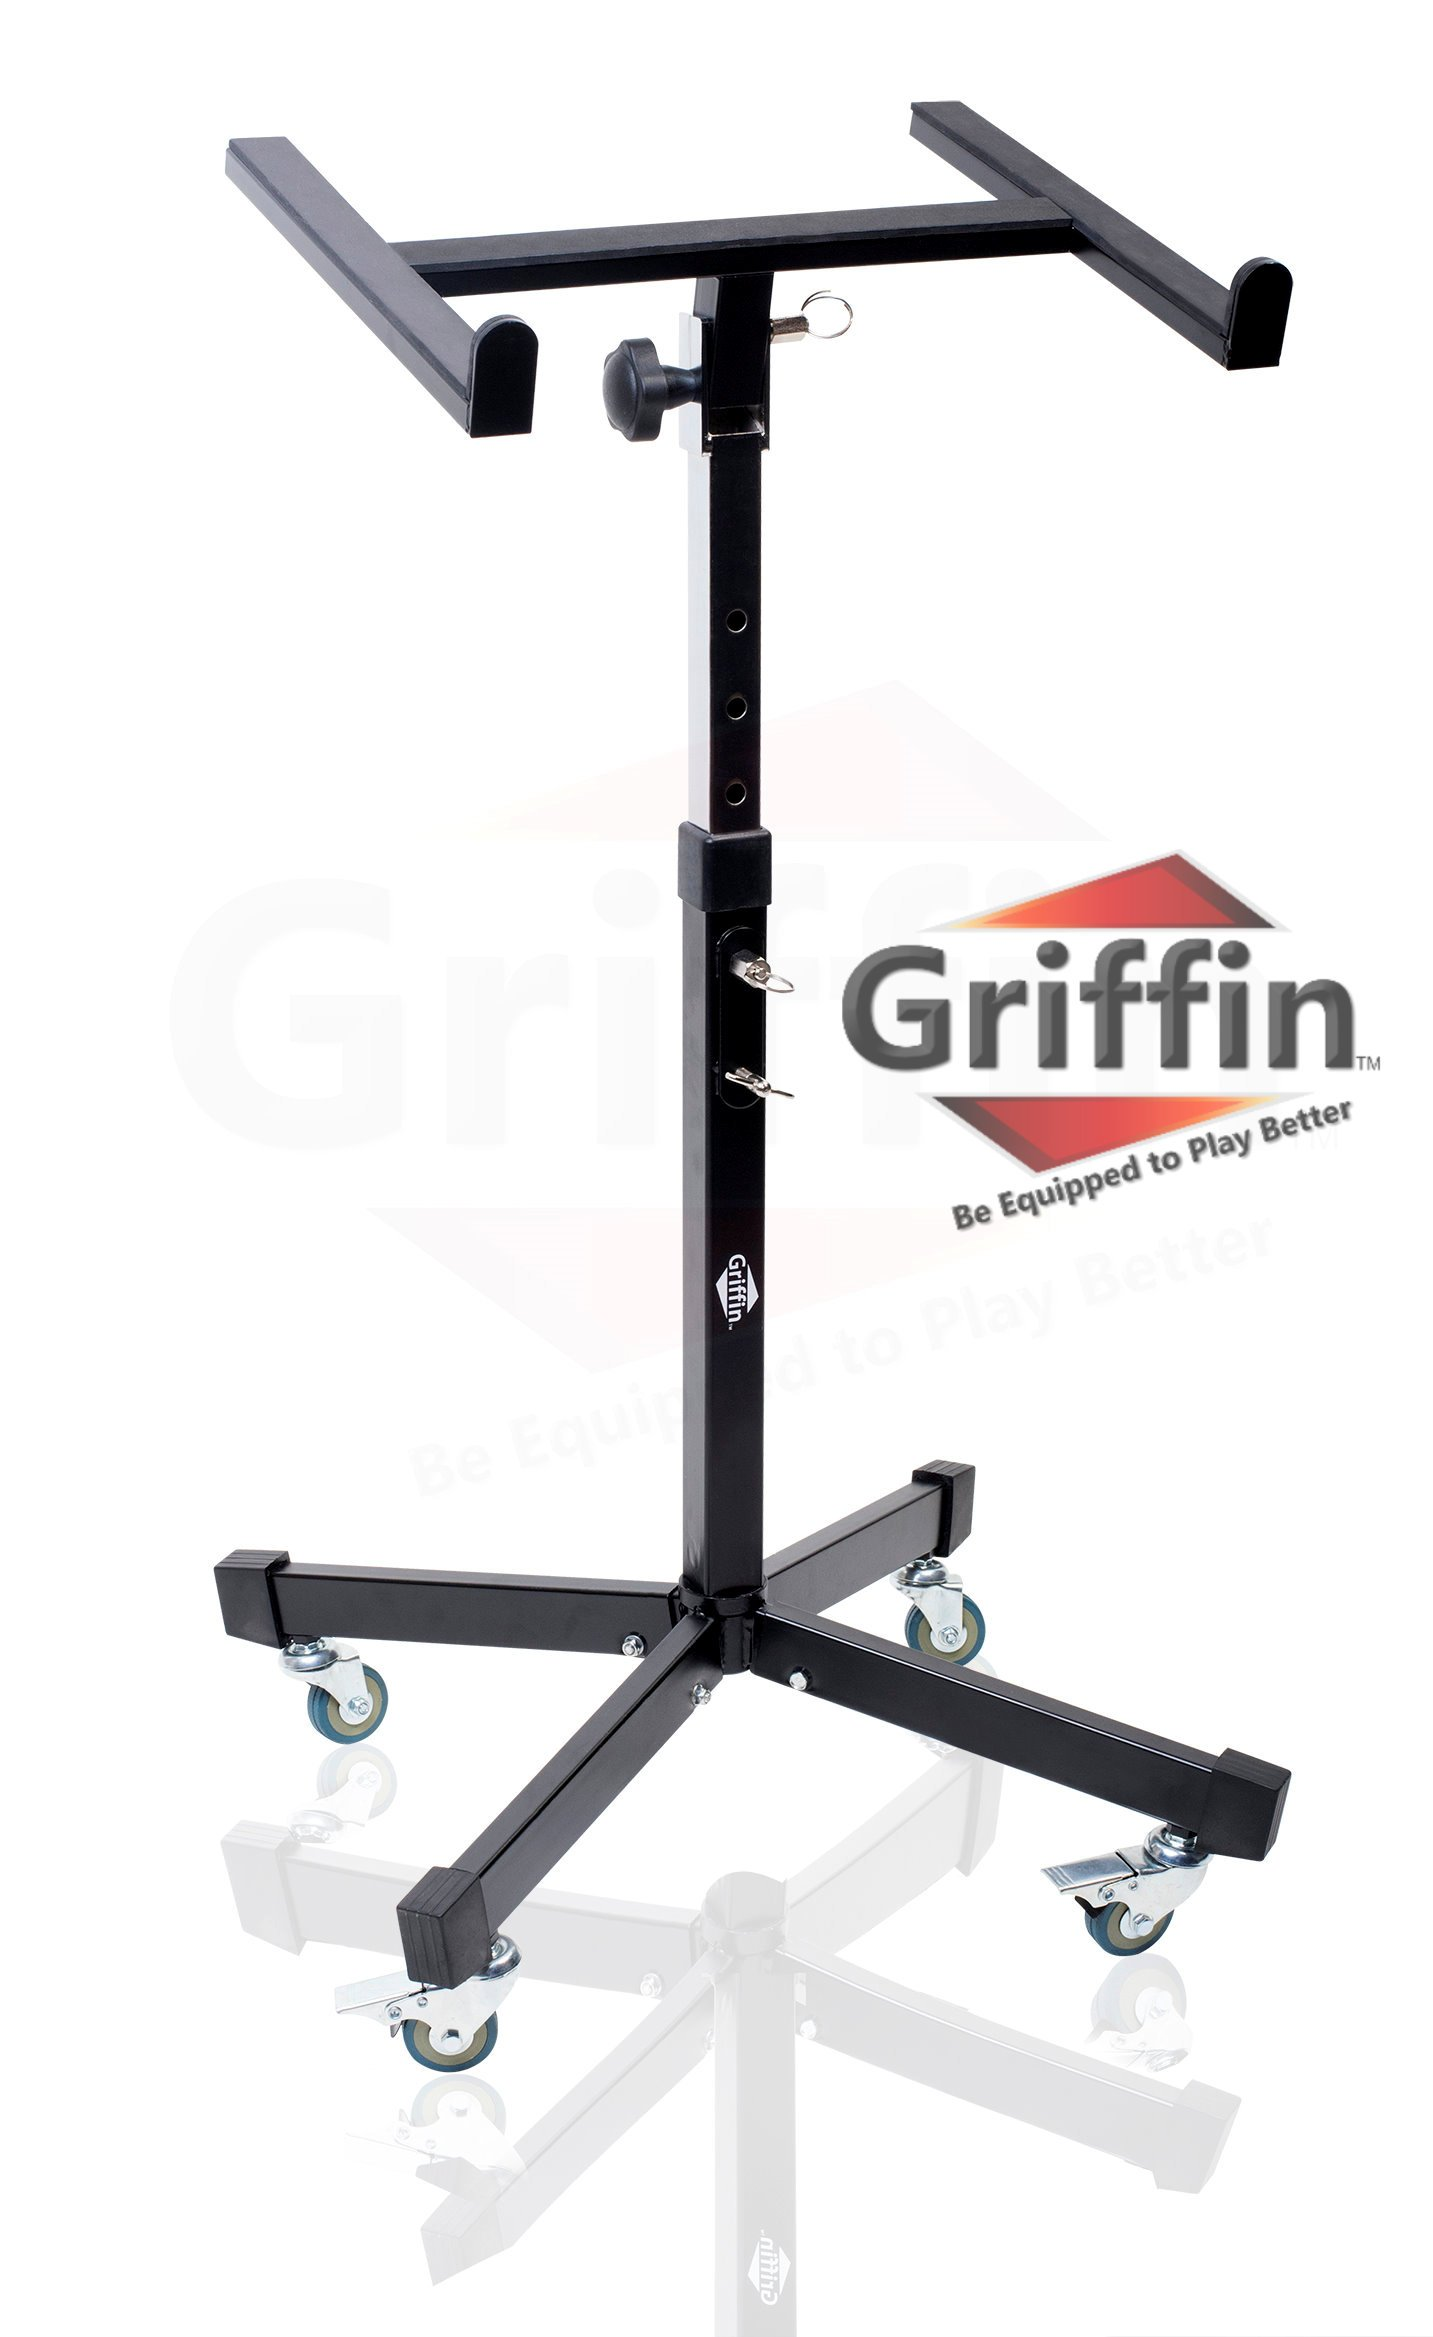 Mobile Studio Mixer Stand DJ Cart by Griffin | Rolling Standing Rack On Casters with Adjustable Height|Portable Turntable | Protect Your Digital Audio Gear and Music Equipment|Heavy Duty Construction